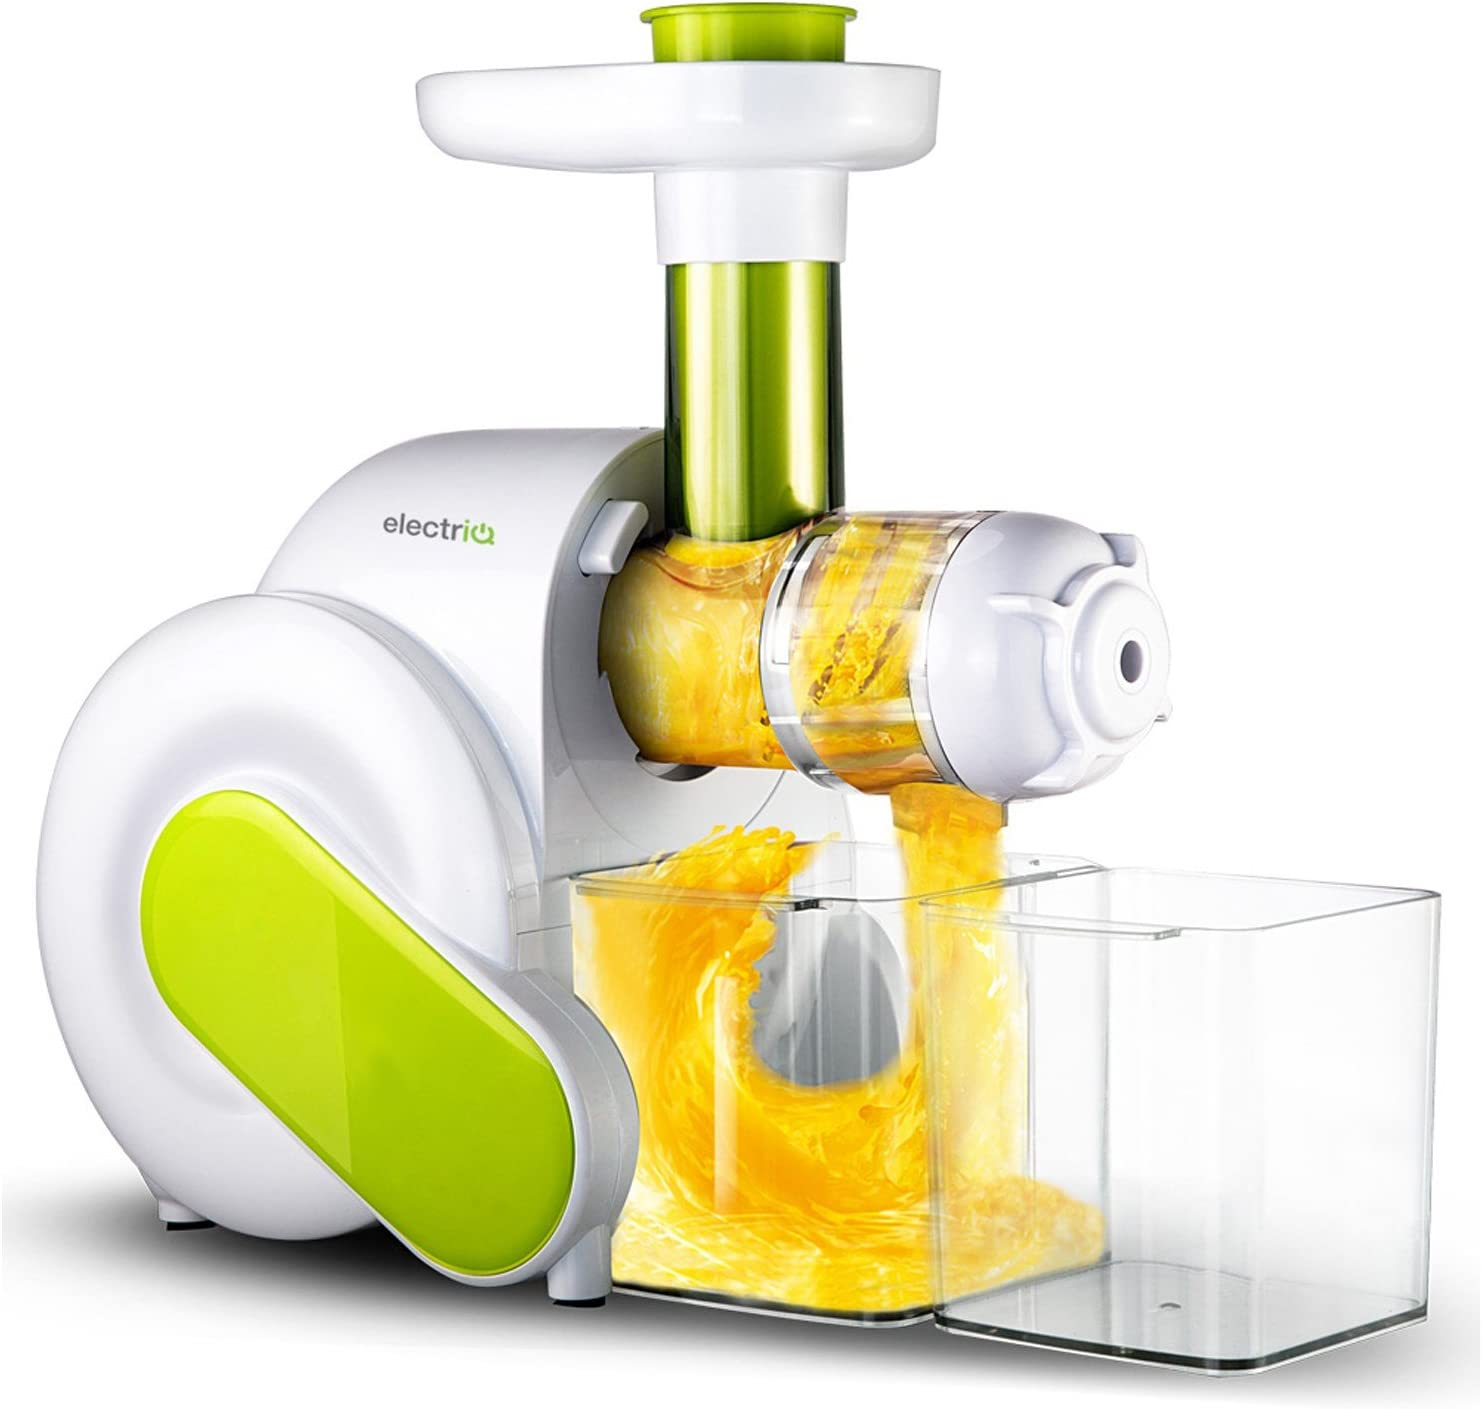 electriQ HSL600 Juicer Whole Fruit, Vegetable Extractor with Quiet Motor